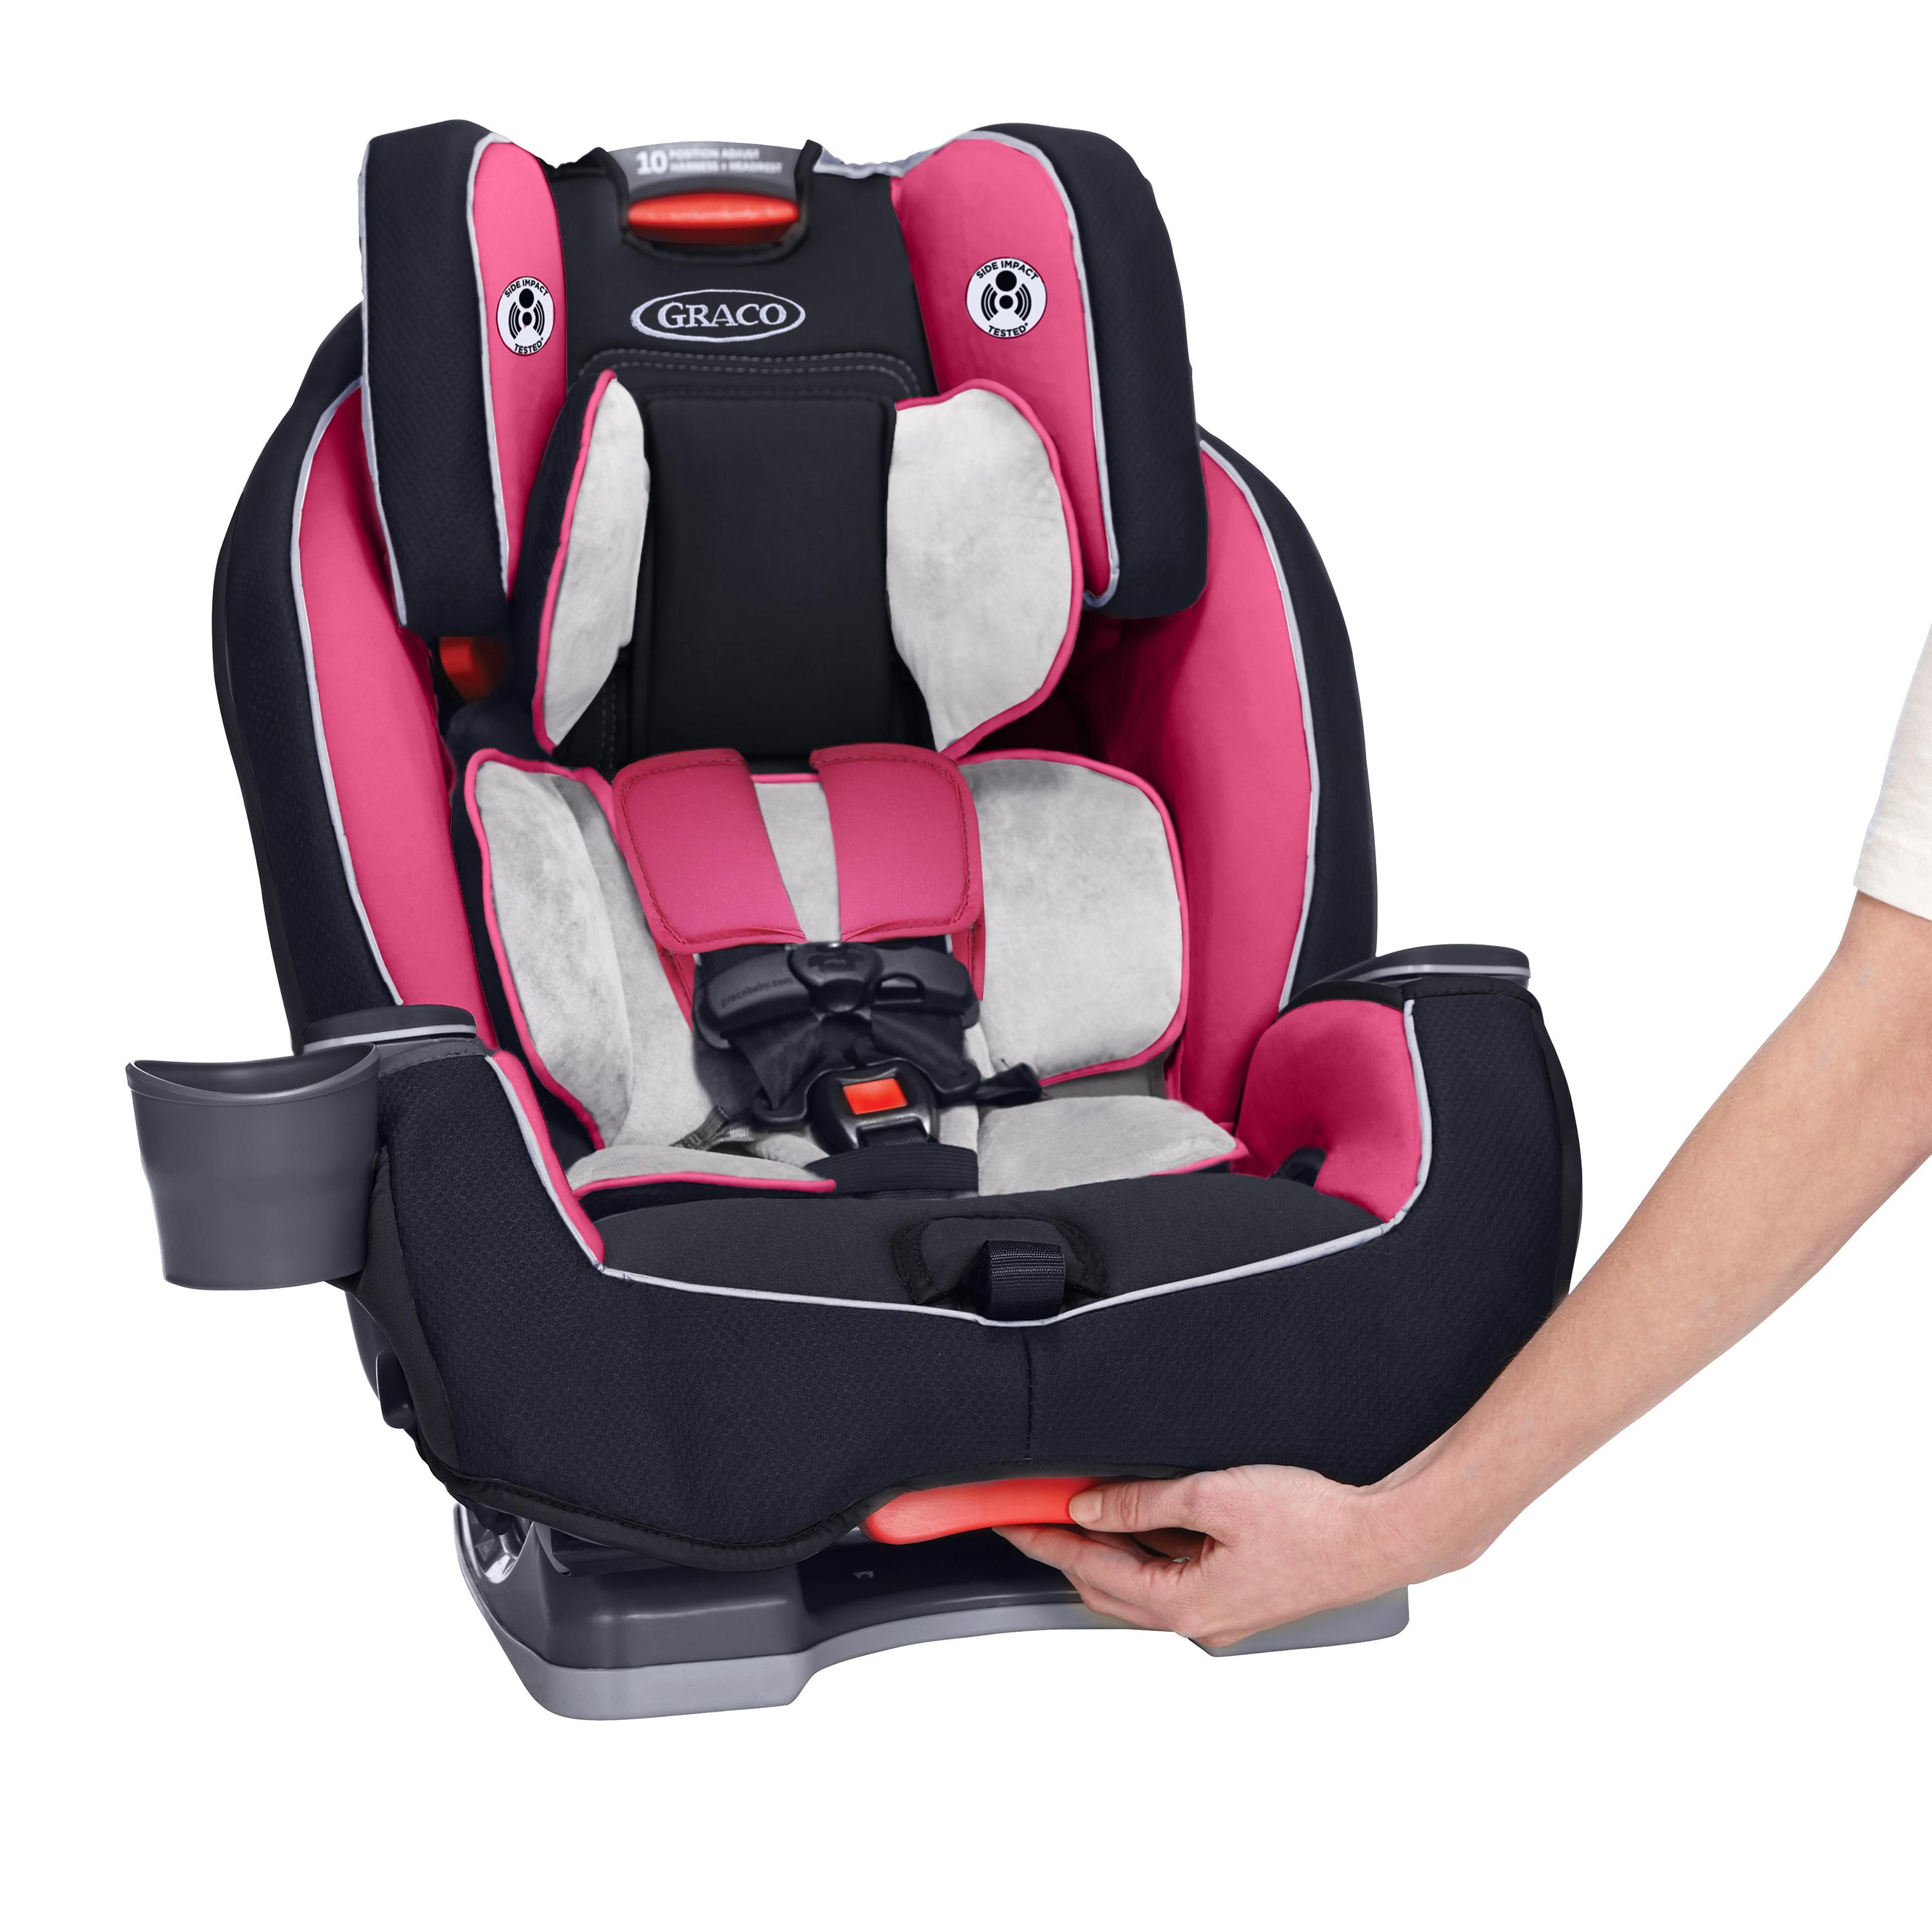 Amazon.com : Graco Milestone All-in-1 Car Seat, Ayla : Baby